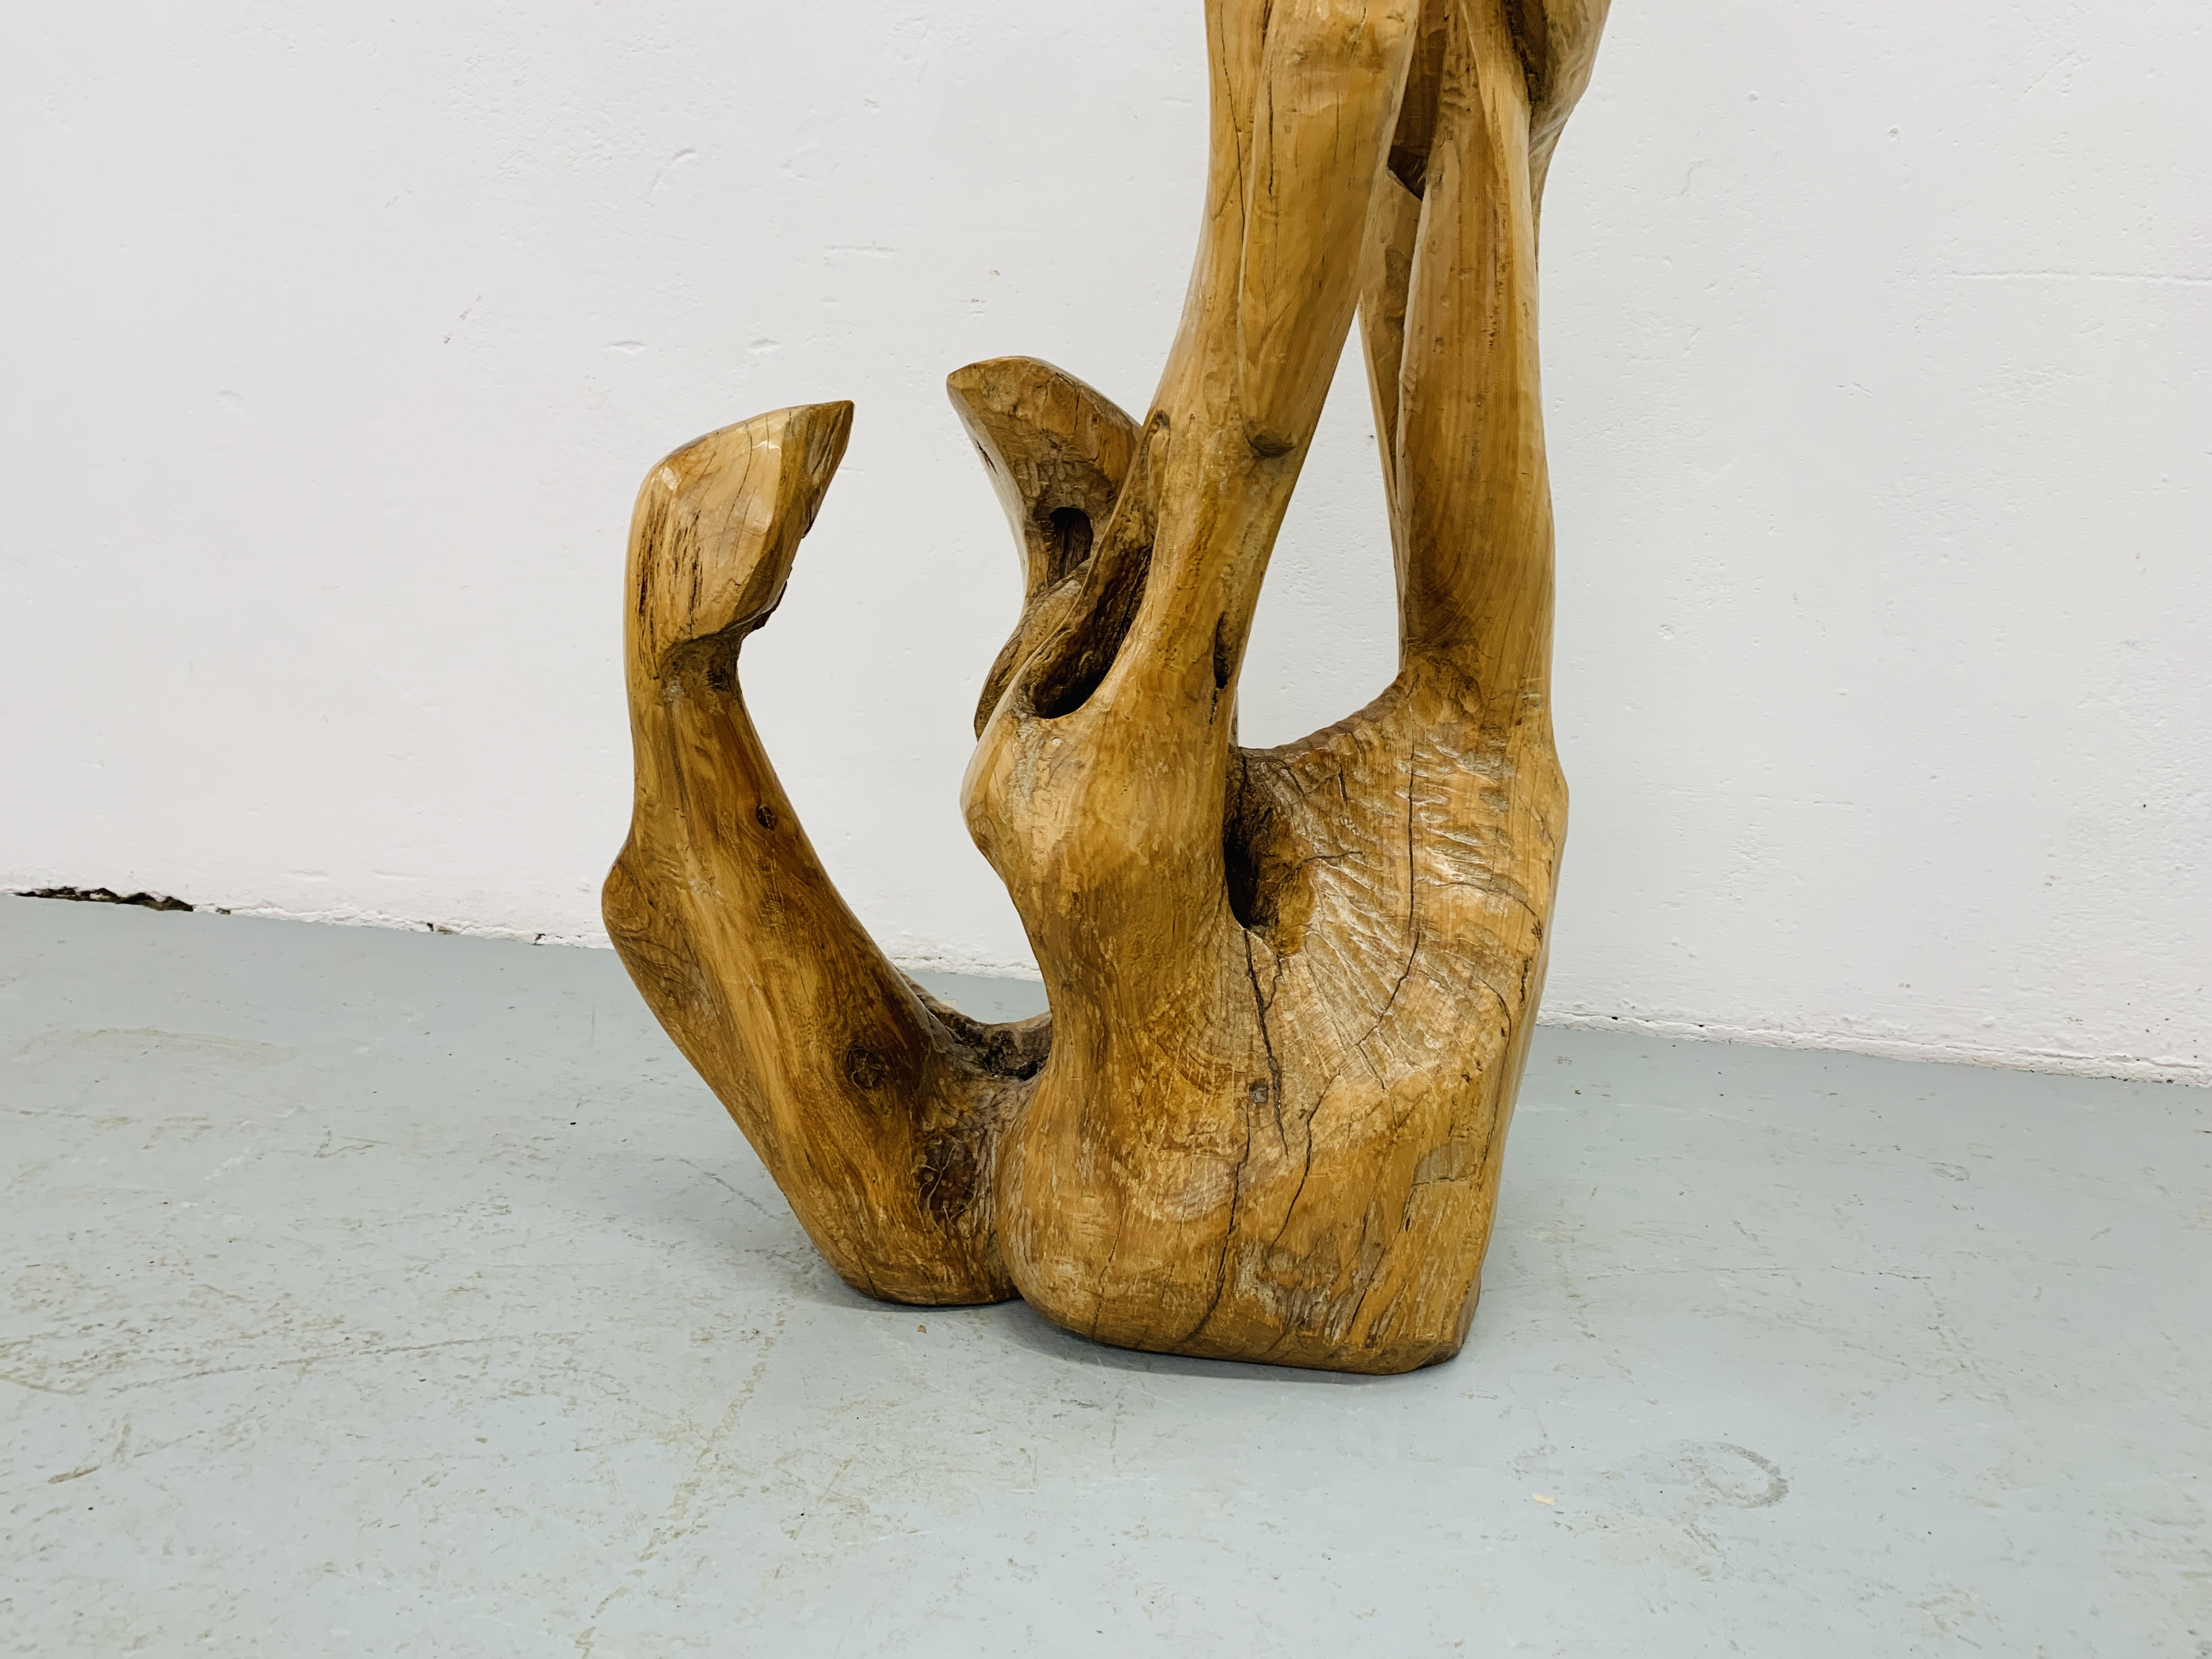 """A HARDWOOD ABSTRACT SCULPTURE """"FAMILY"""" BY P.T. - Image 4 of 9"""